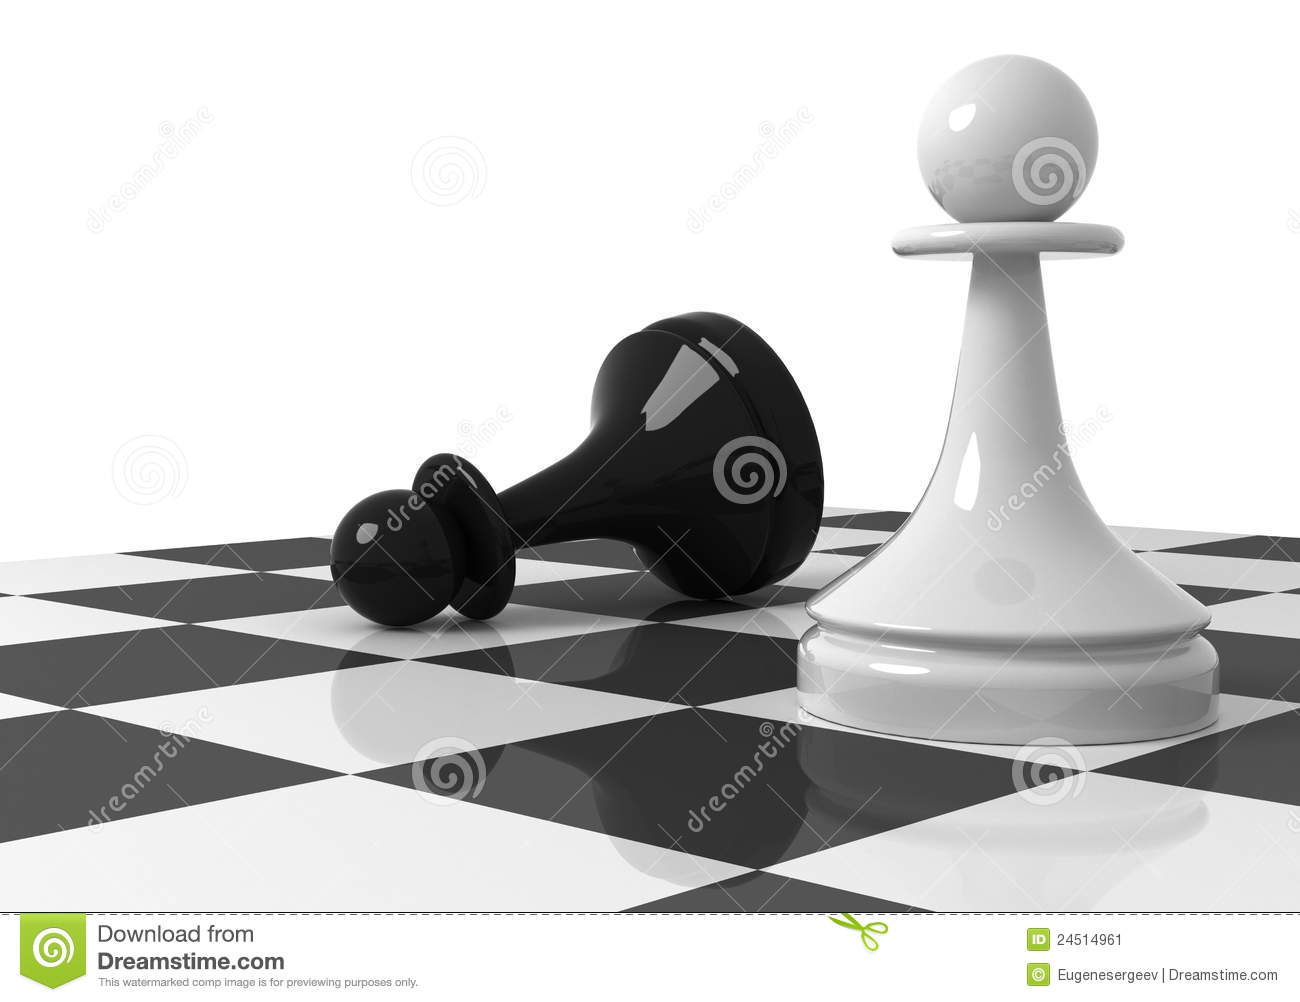 free illustration chessboard render - photo #14